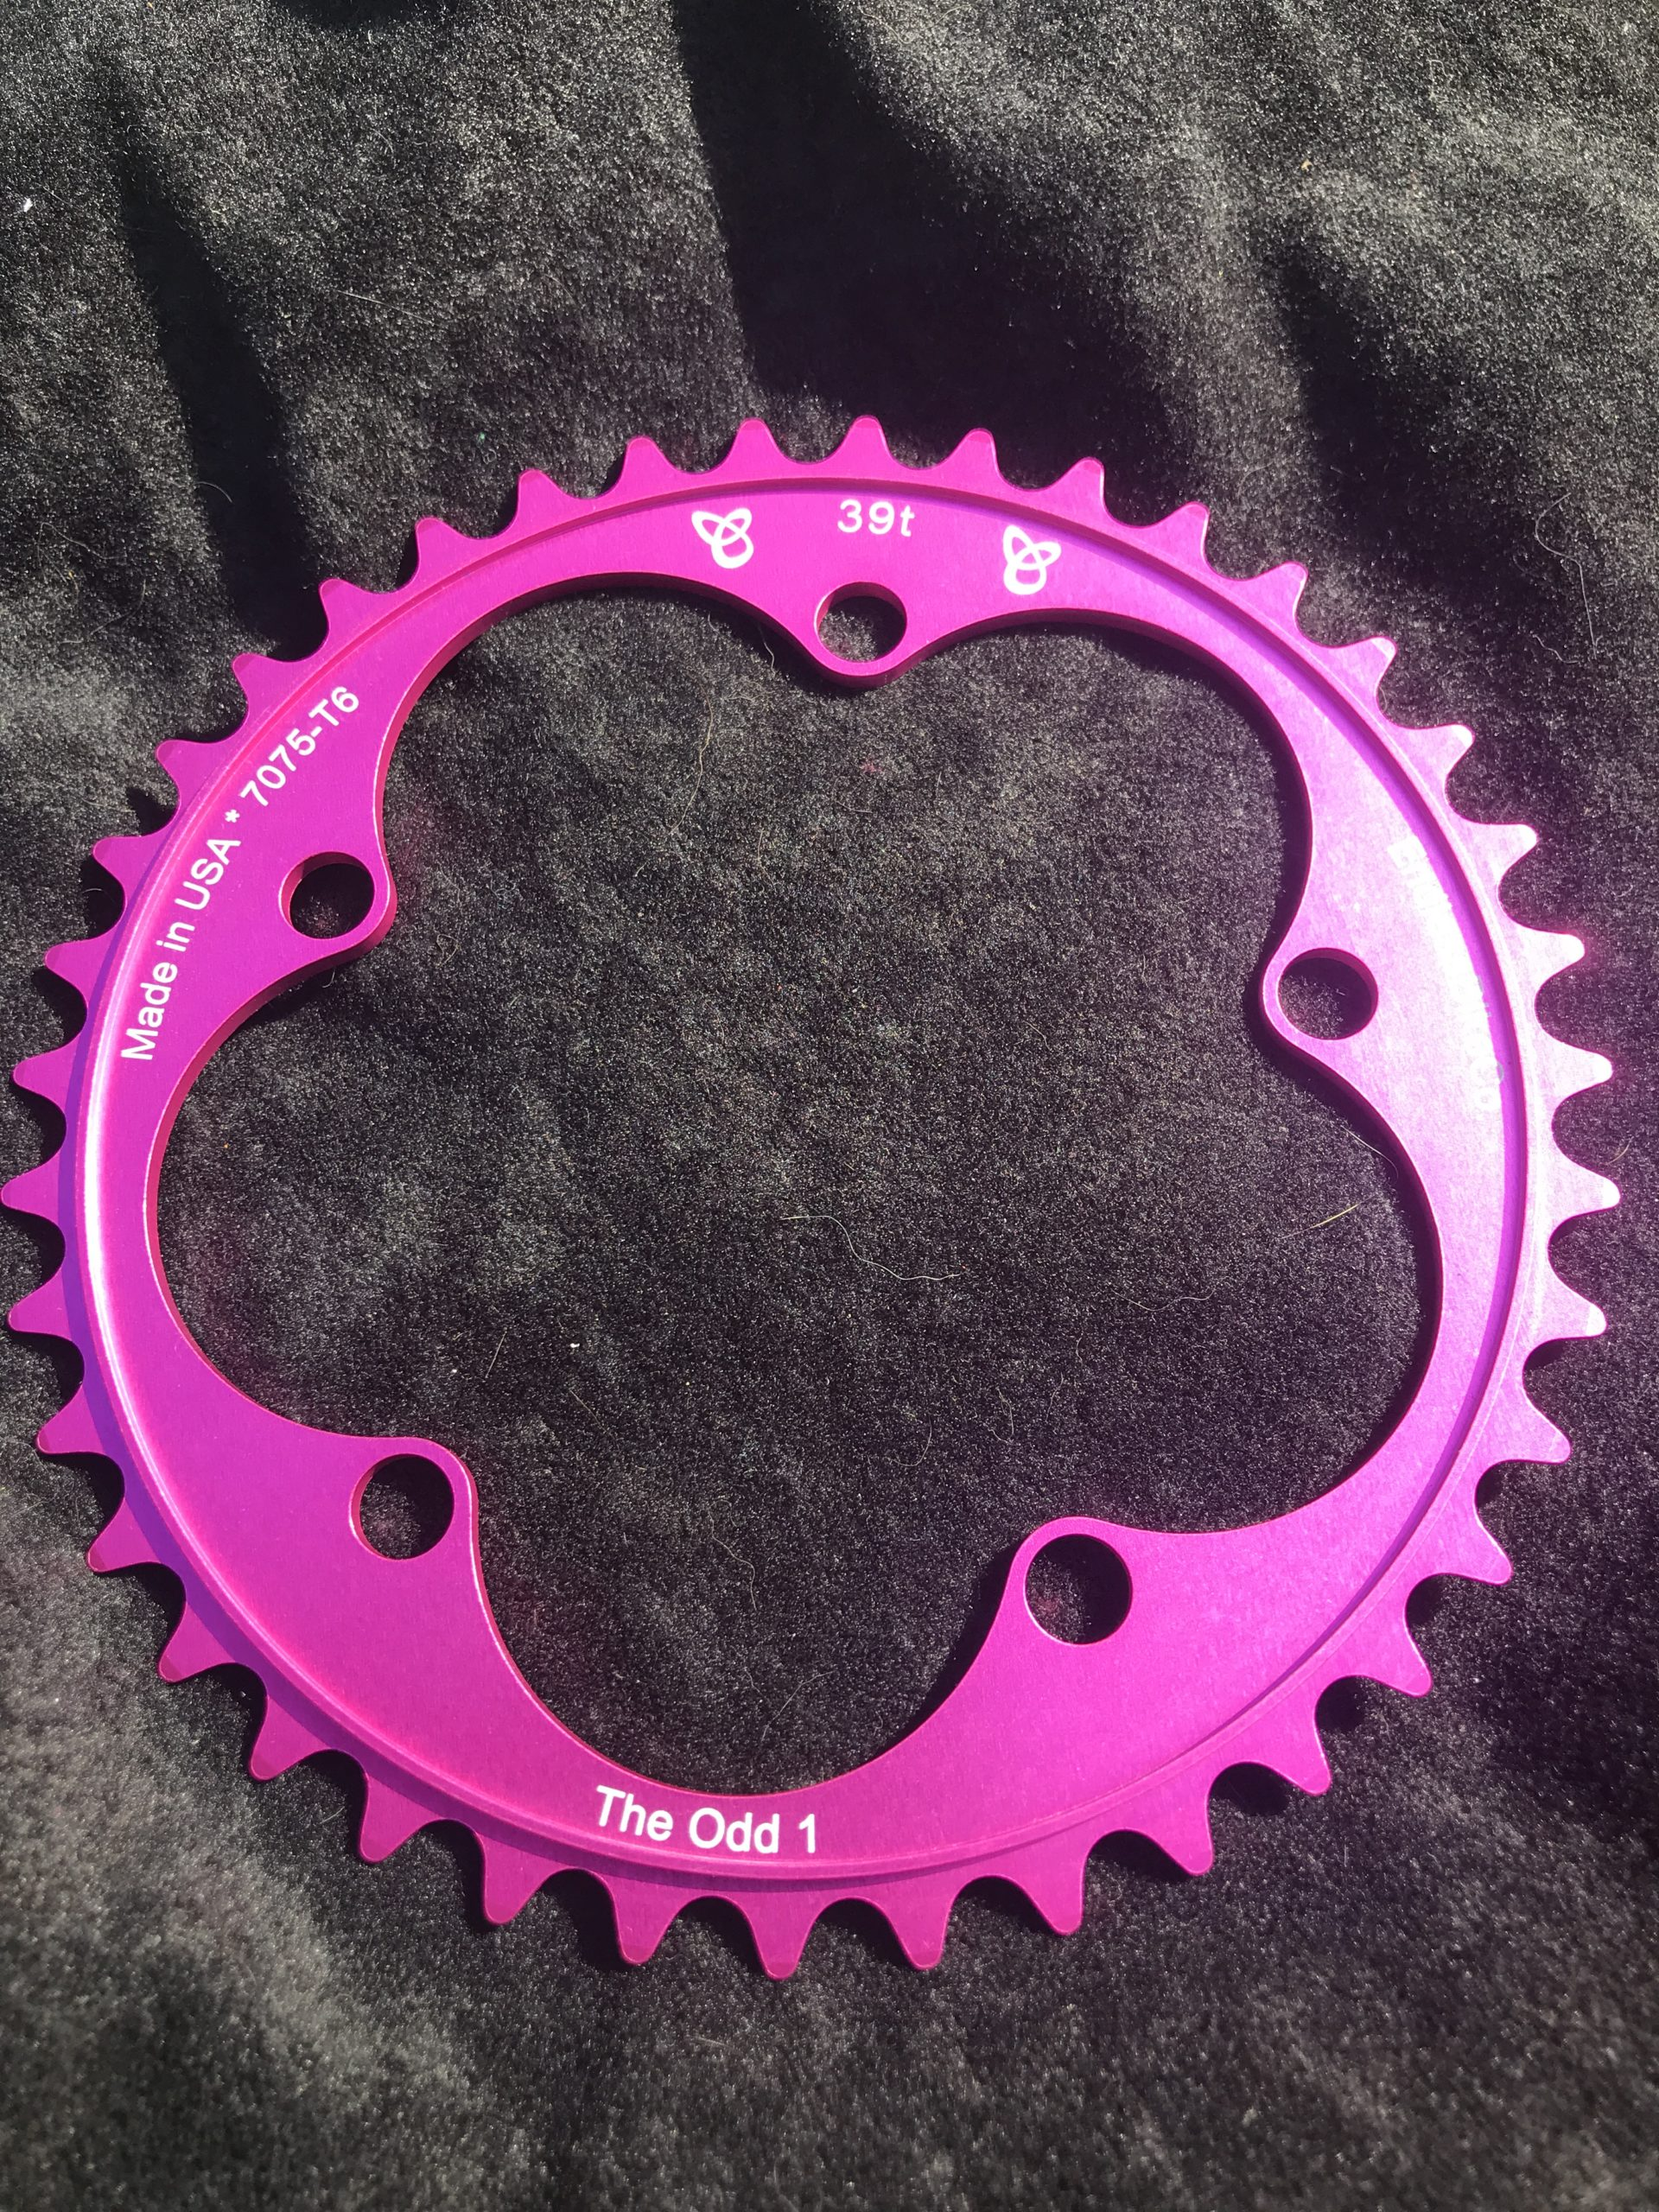 Narrow wide chain ring 39 tooth pink